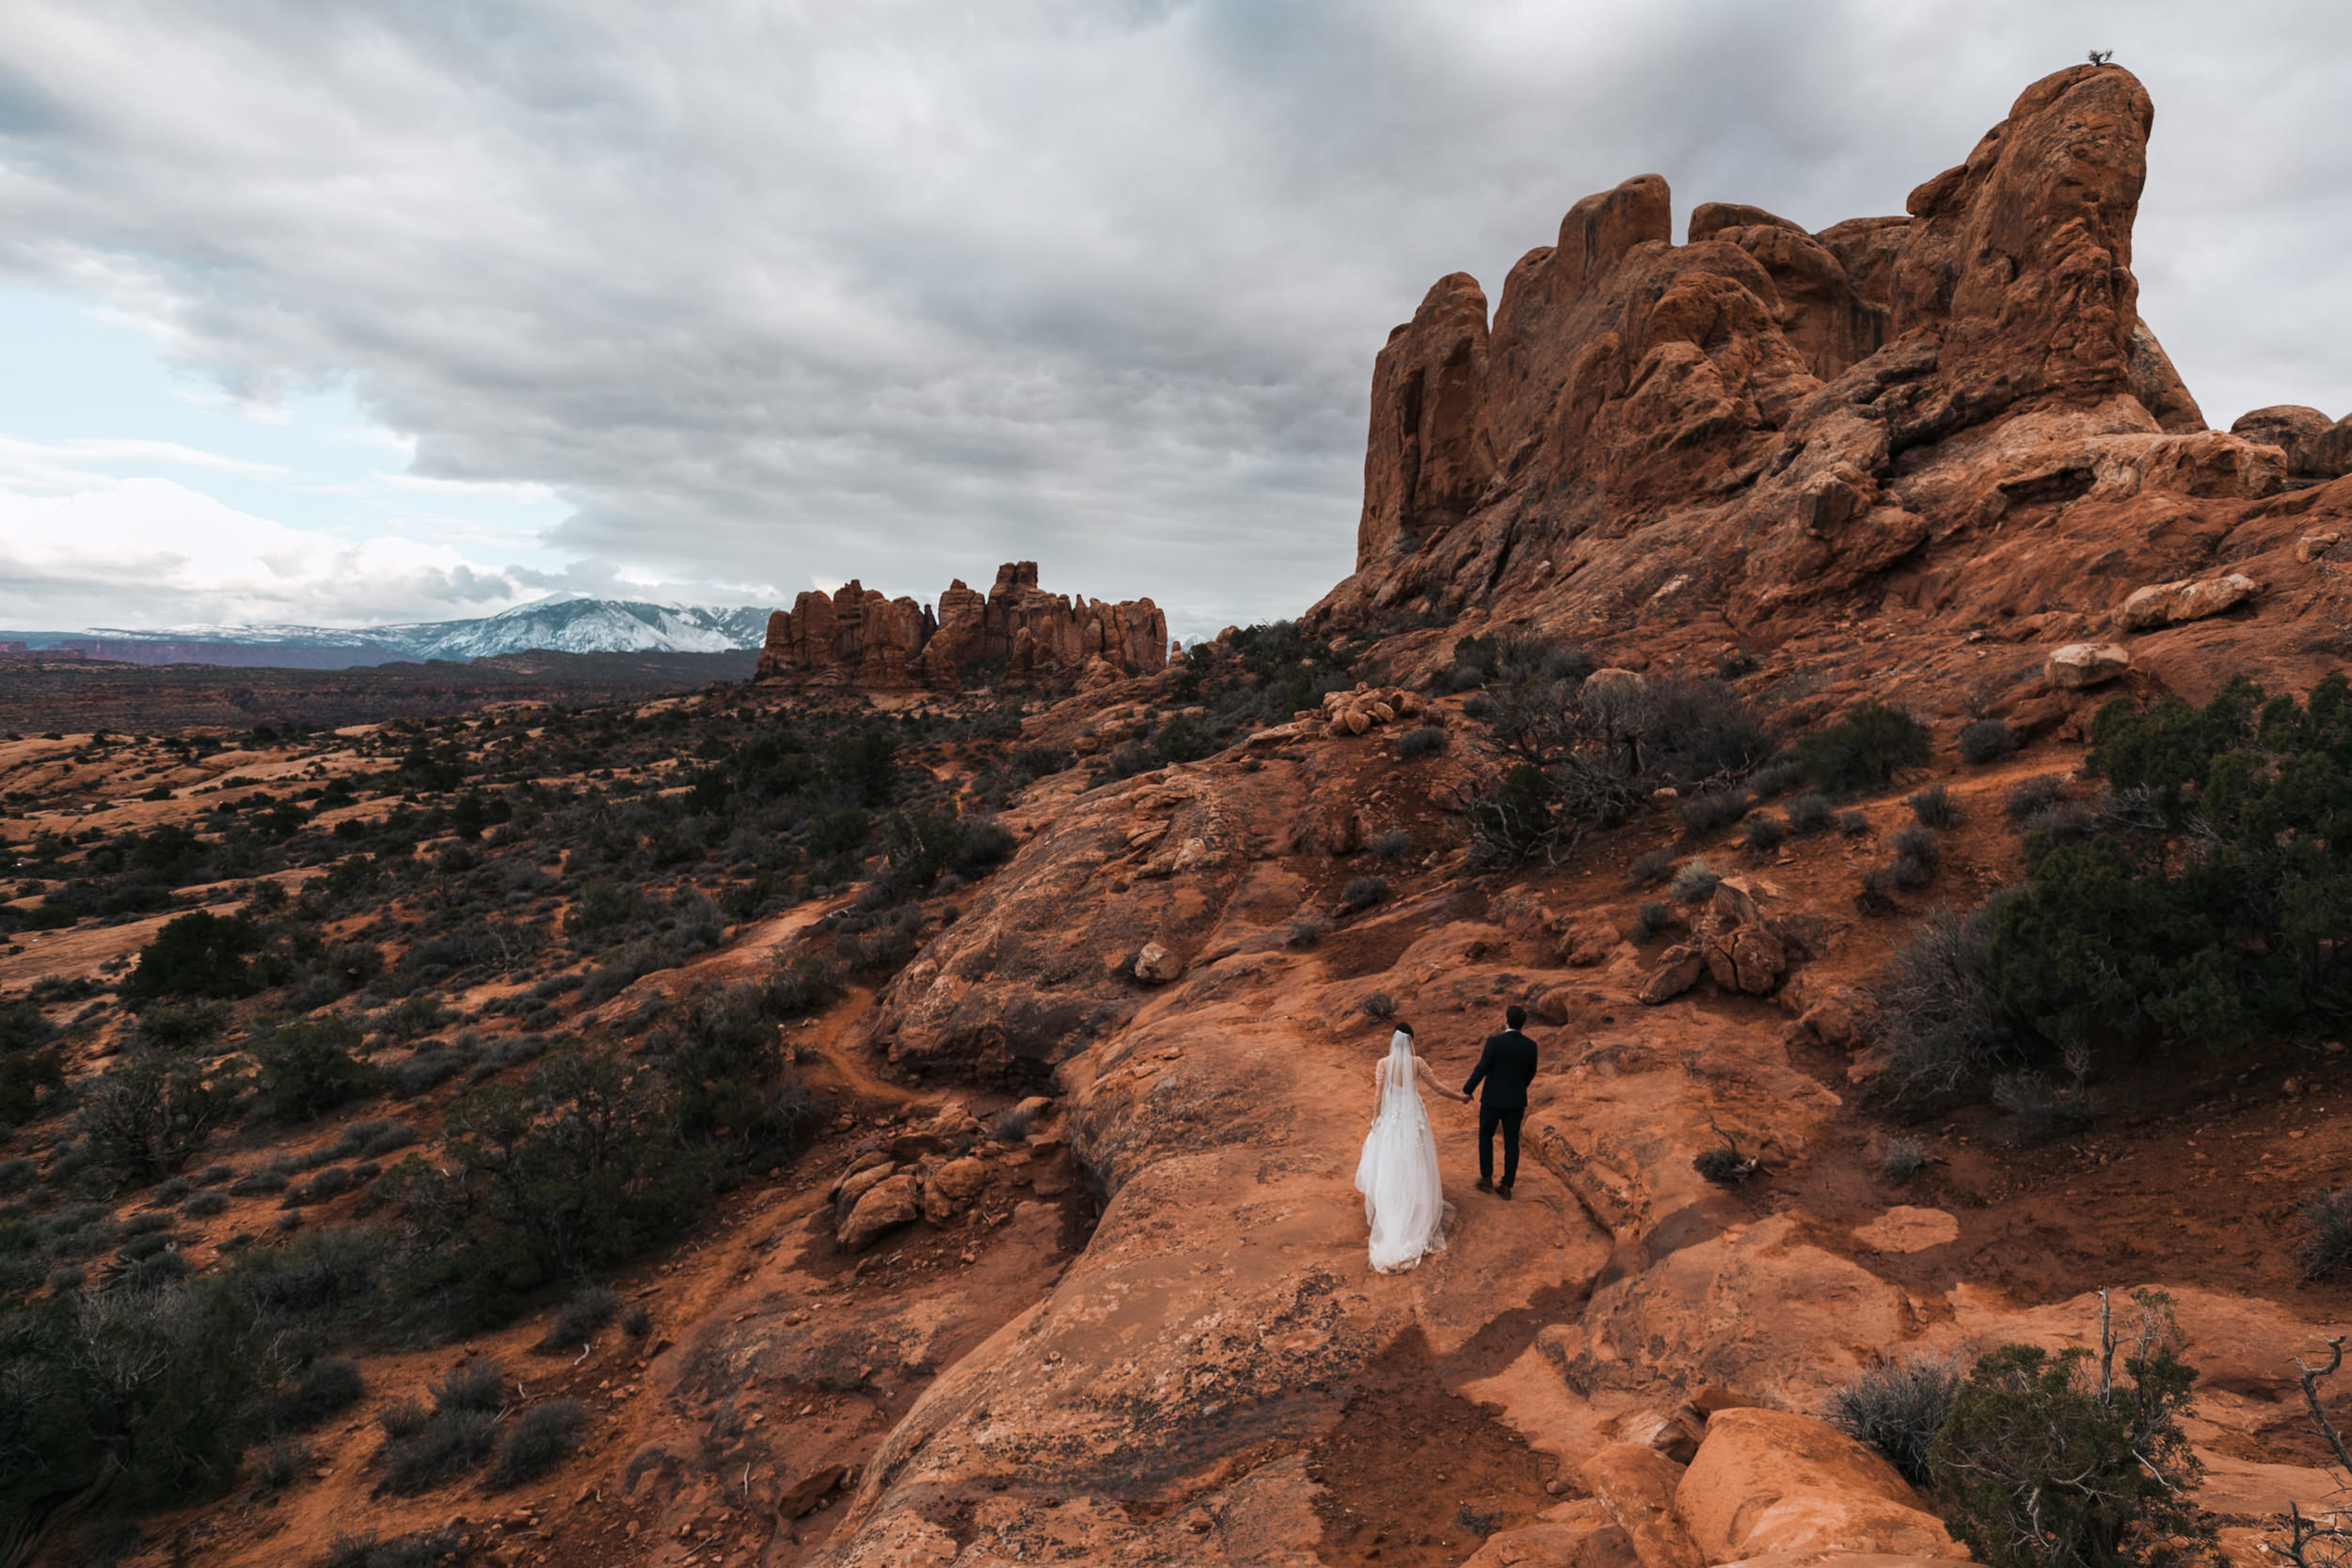 Send me an email to ask how you can get married in arches national park.